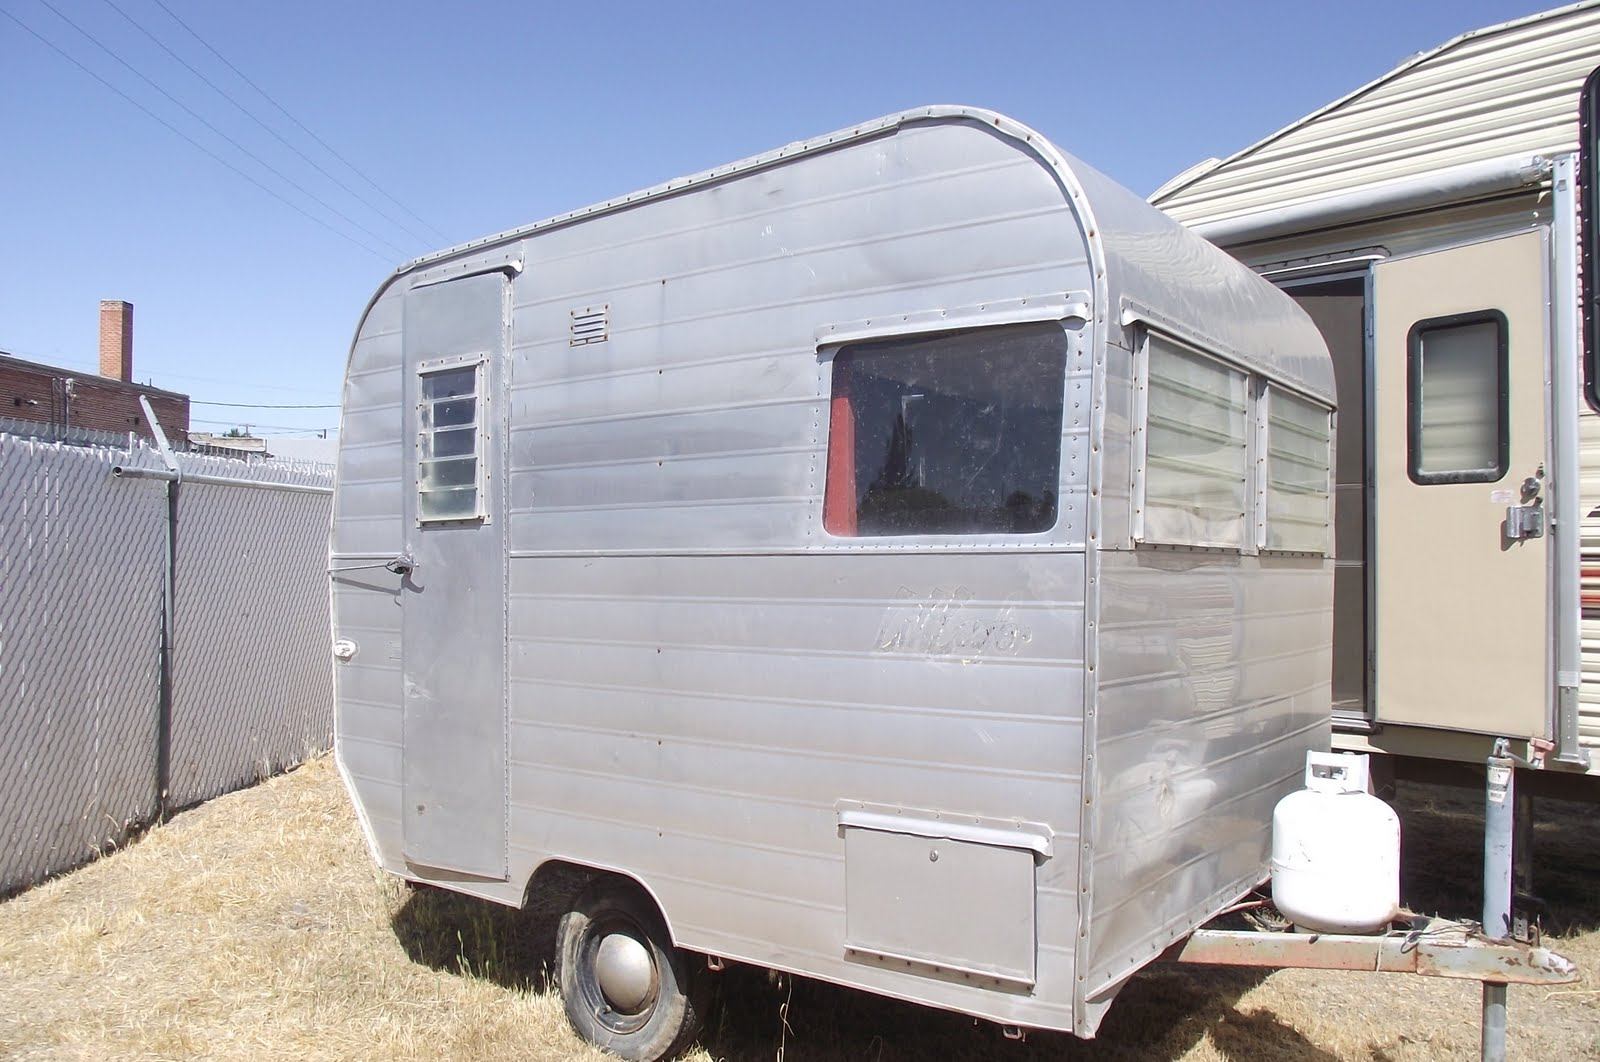 The Queen of her Own Trailer Park: 1960 Lil Loafer